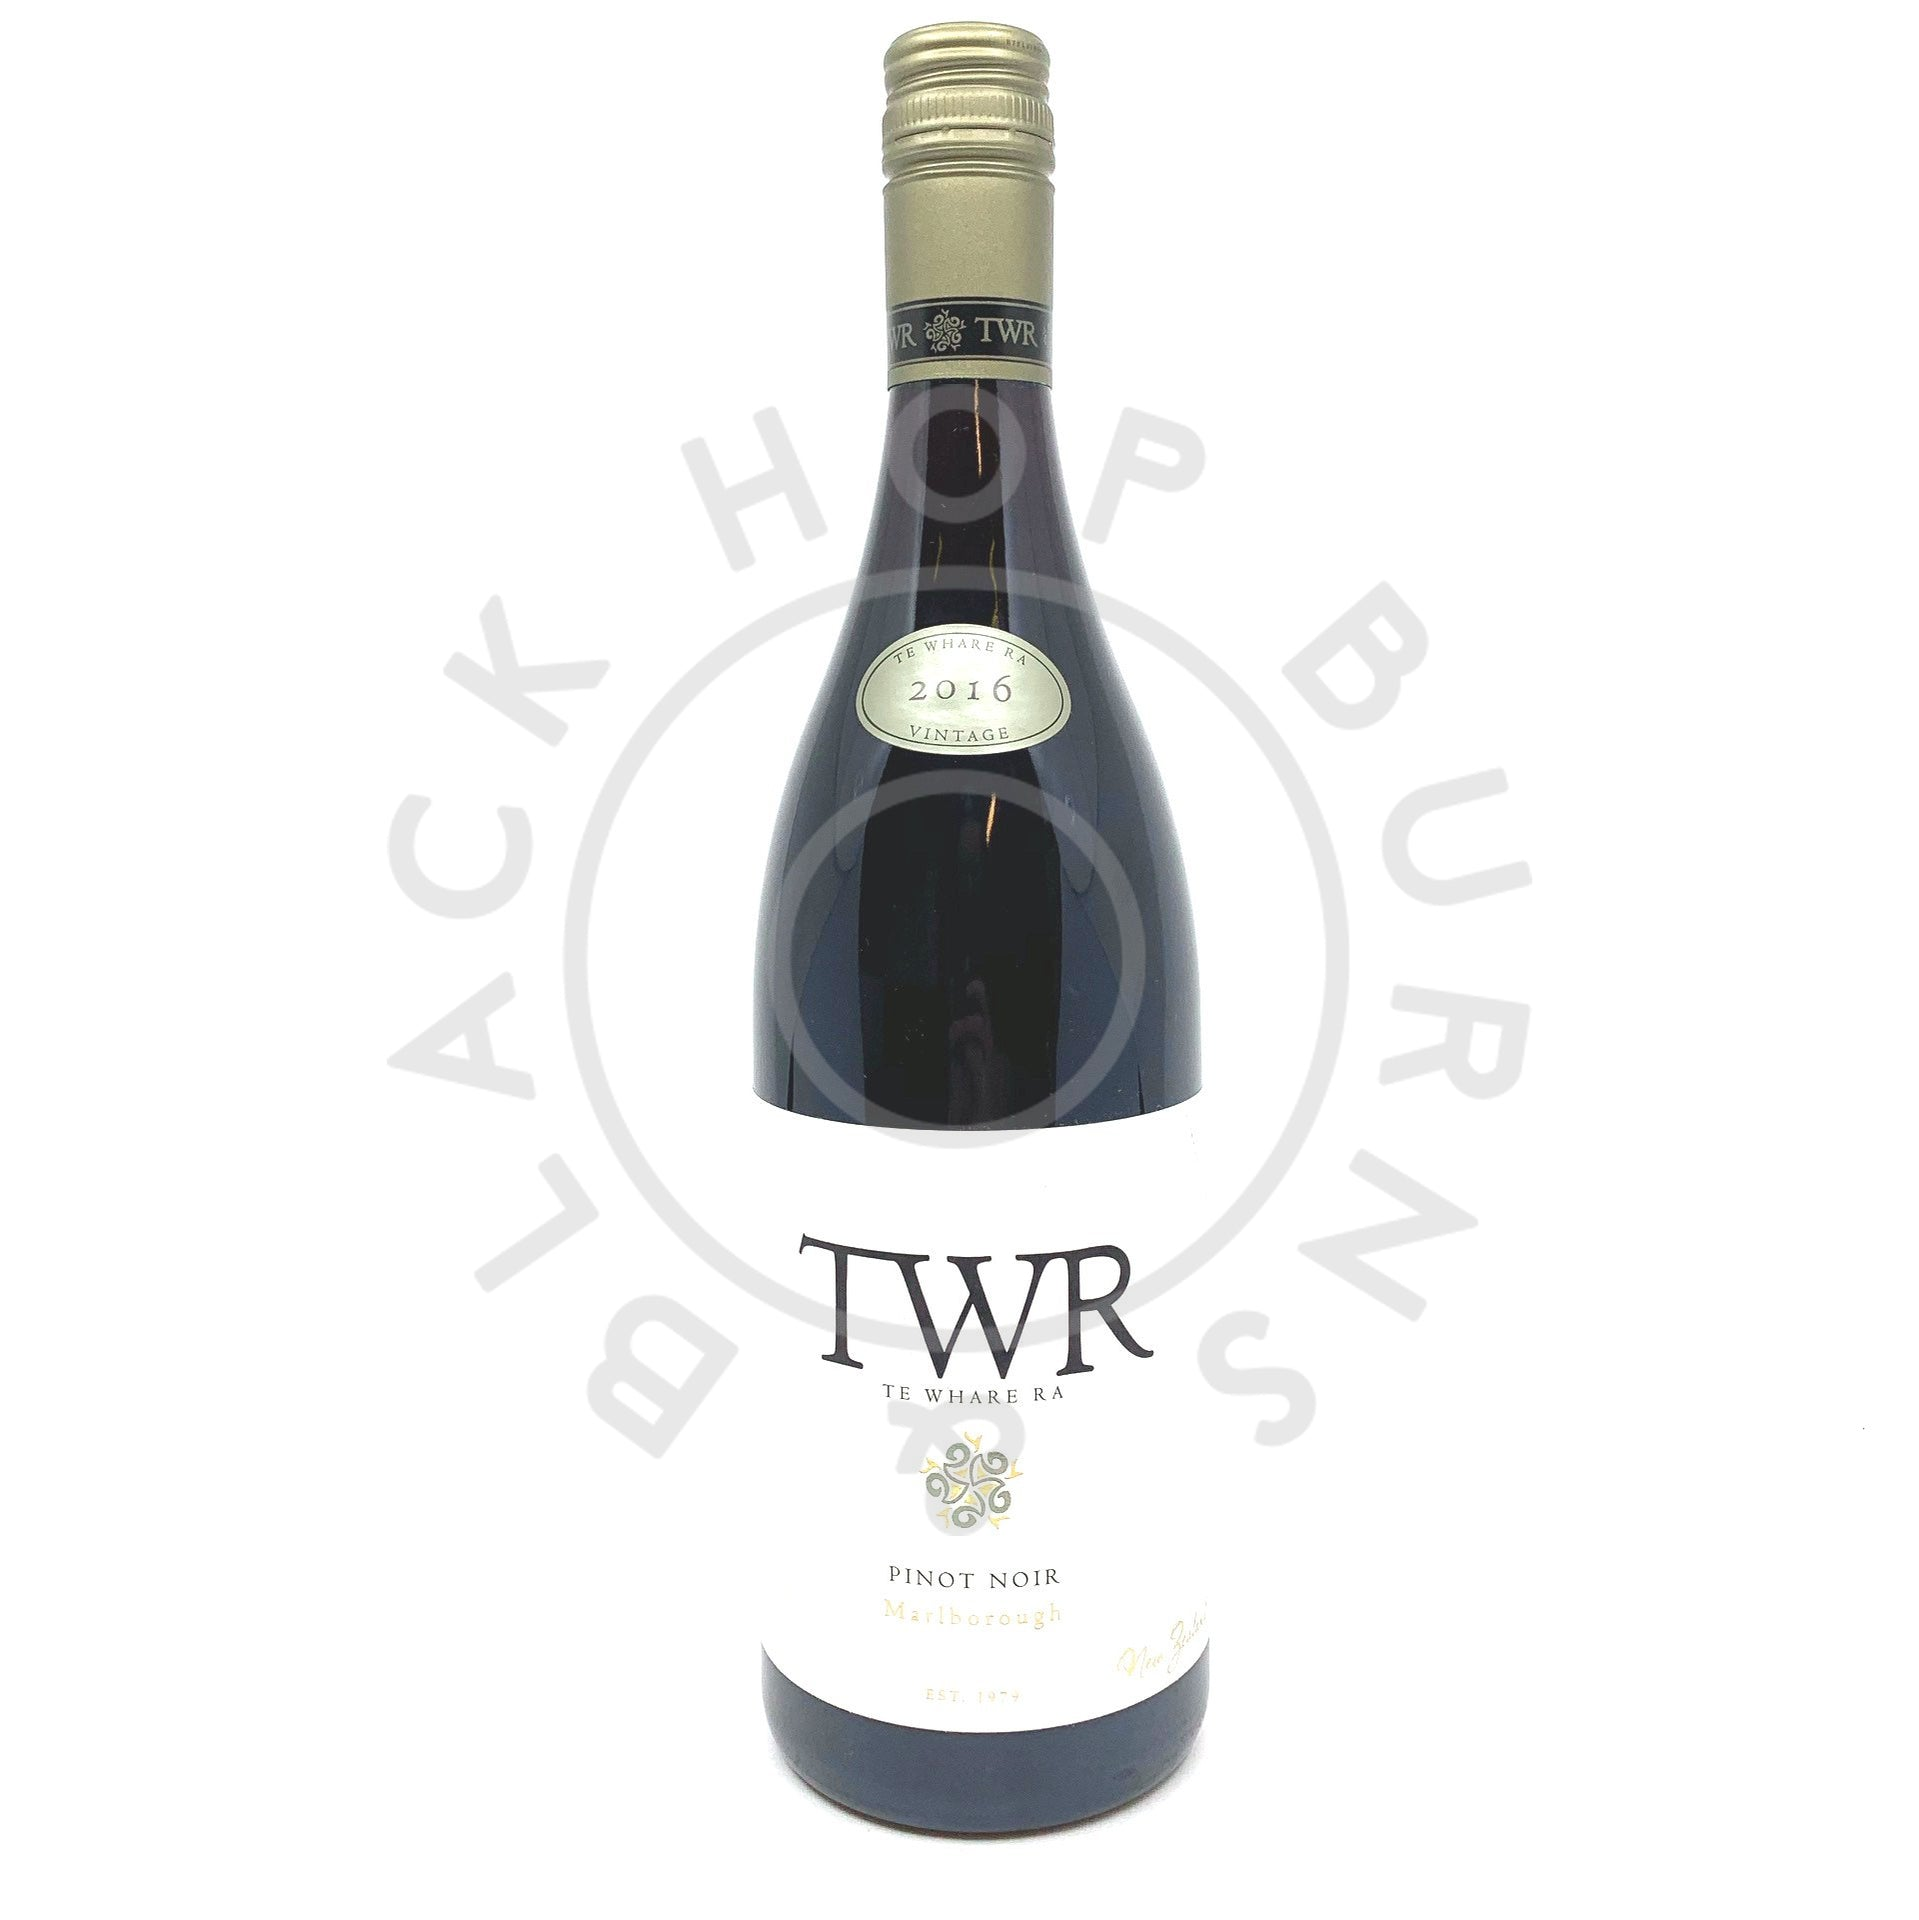 Te Whare Ra Pinot Noir 2016 13% (750ml)-Hop Burns & Black